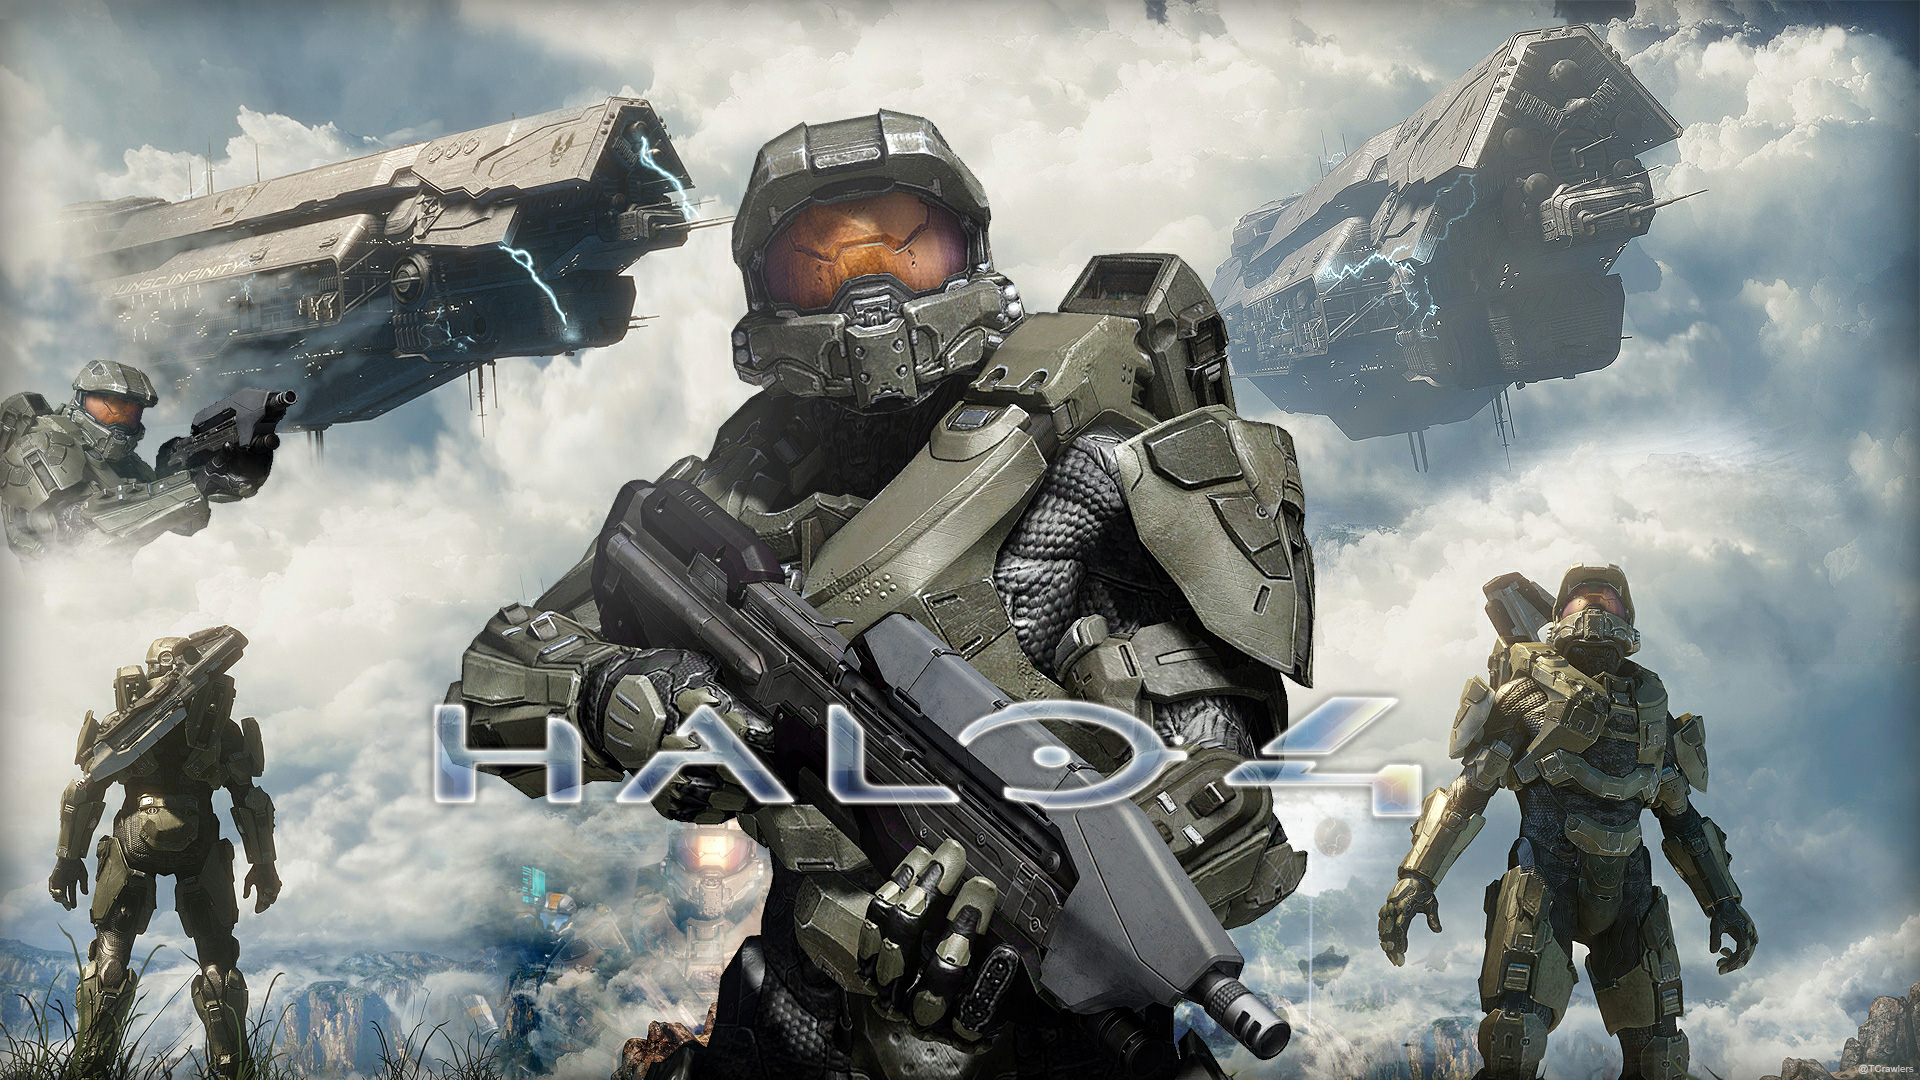 48+ 1080P Halo Wallpaper on WallpaperSafari